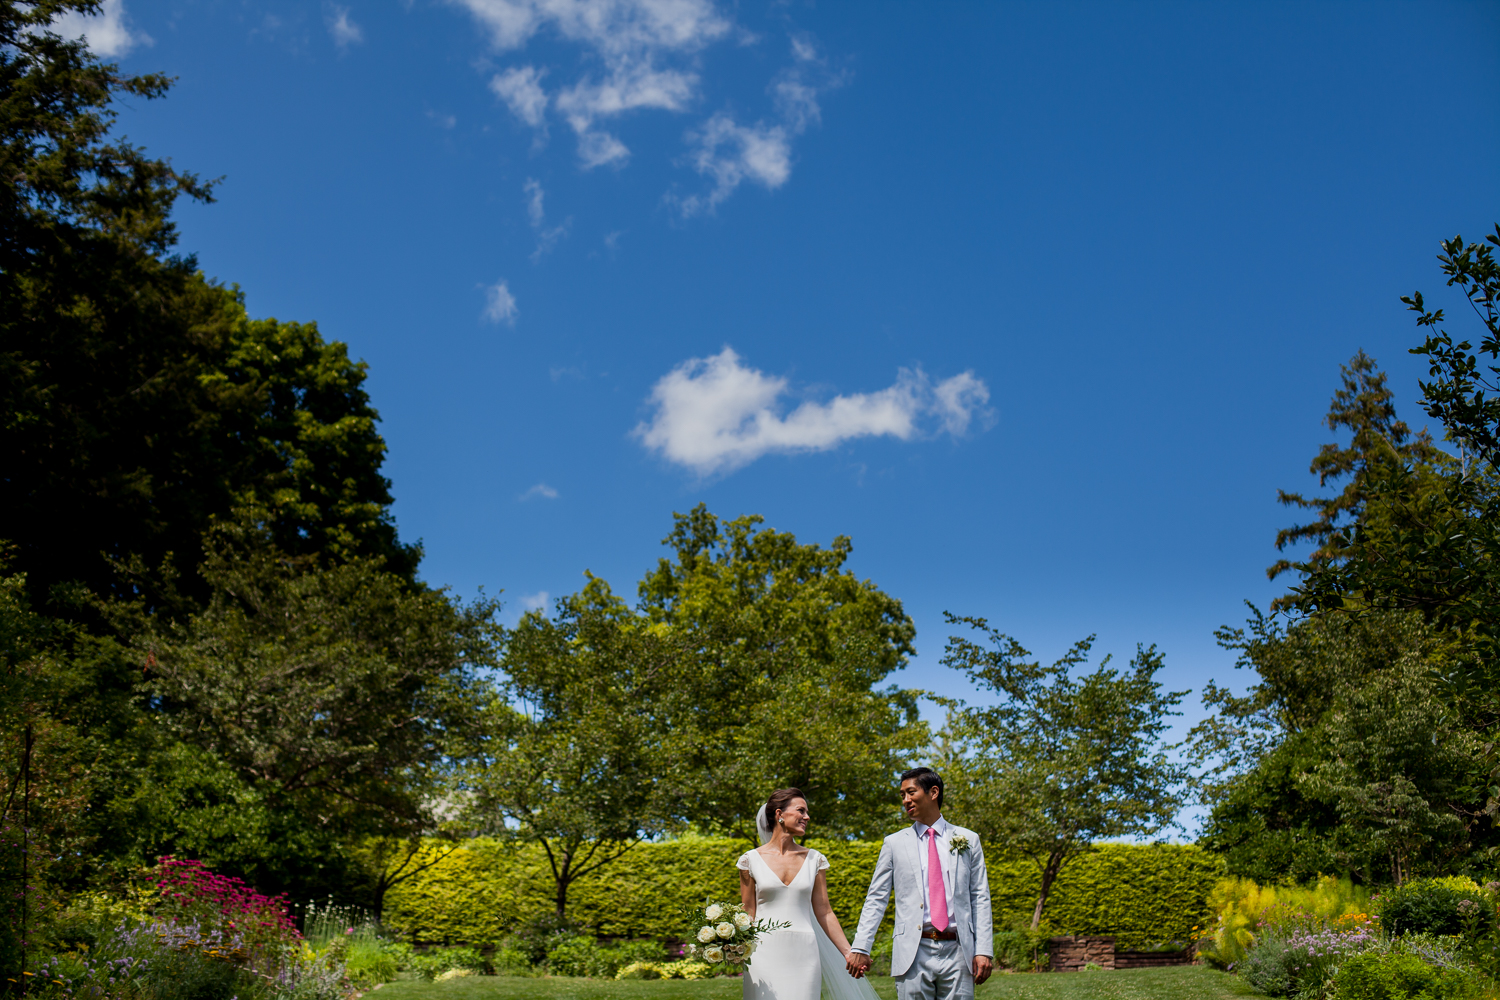 Bride and groom pose in a garden.